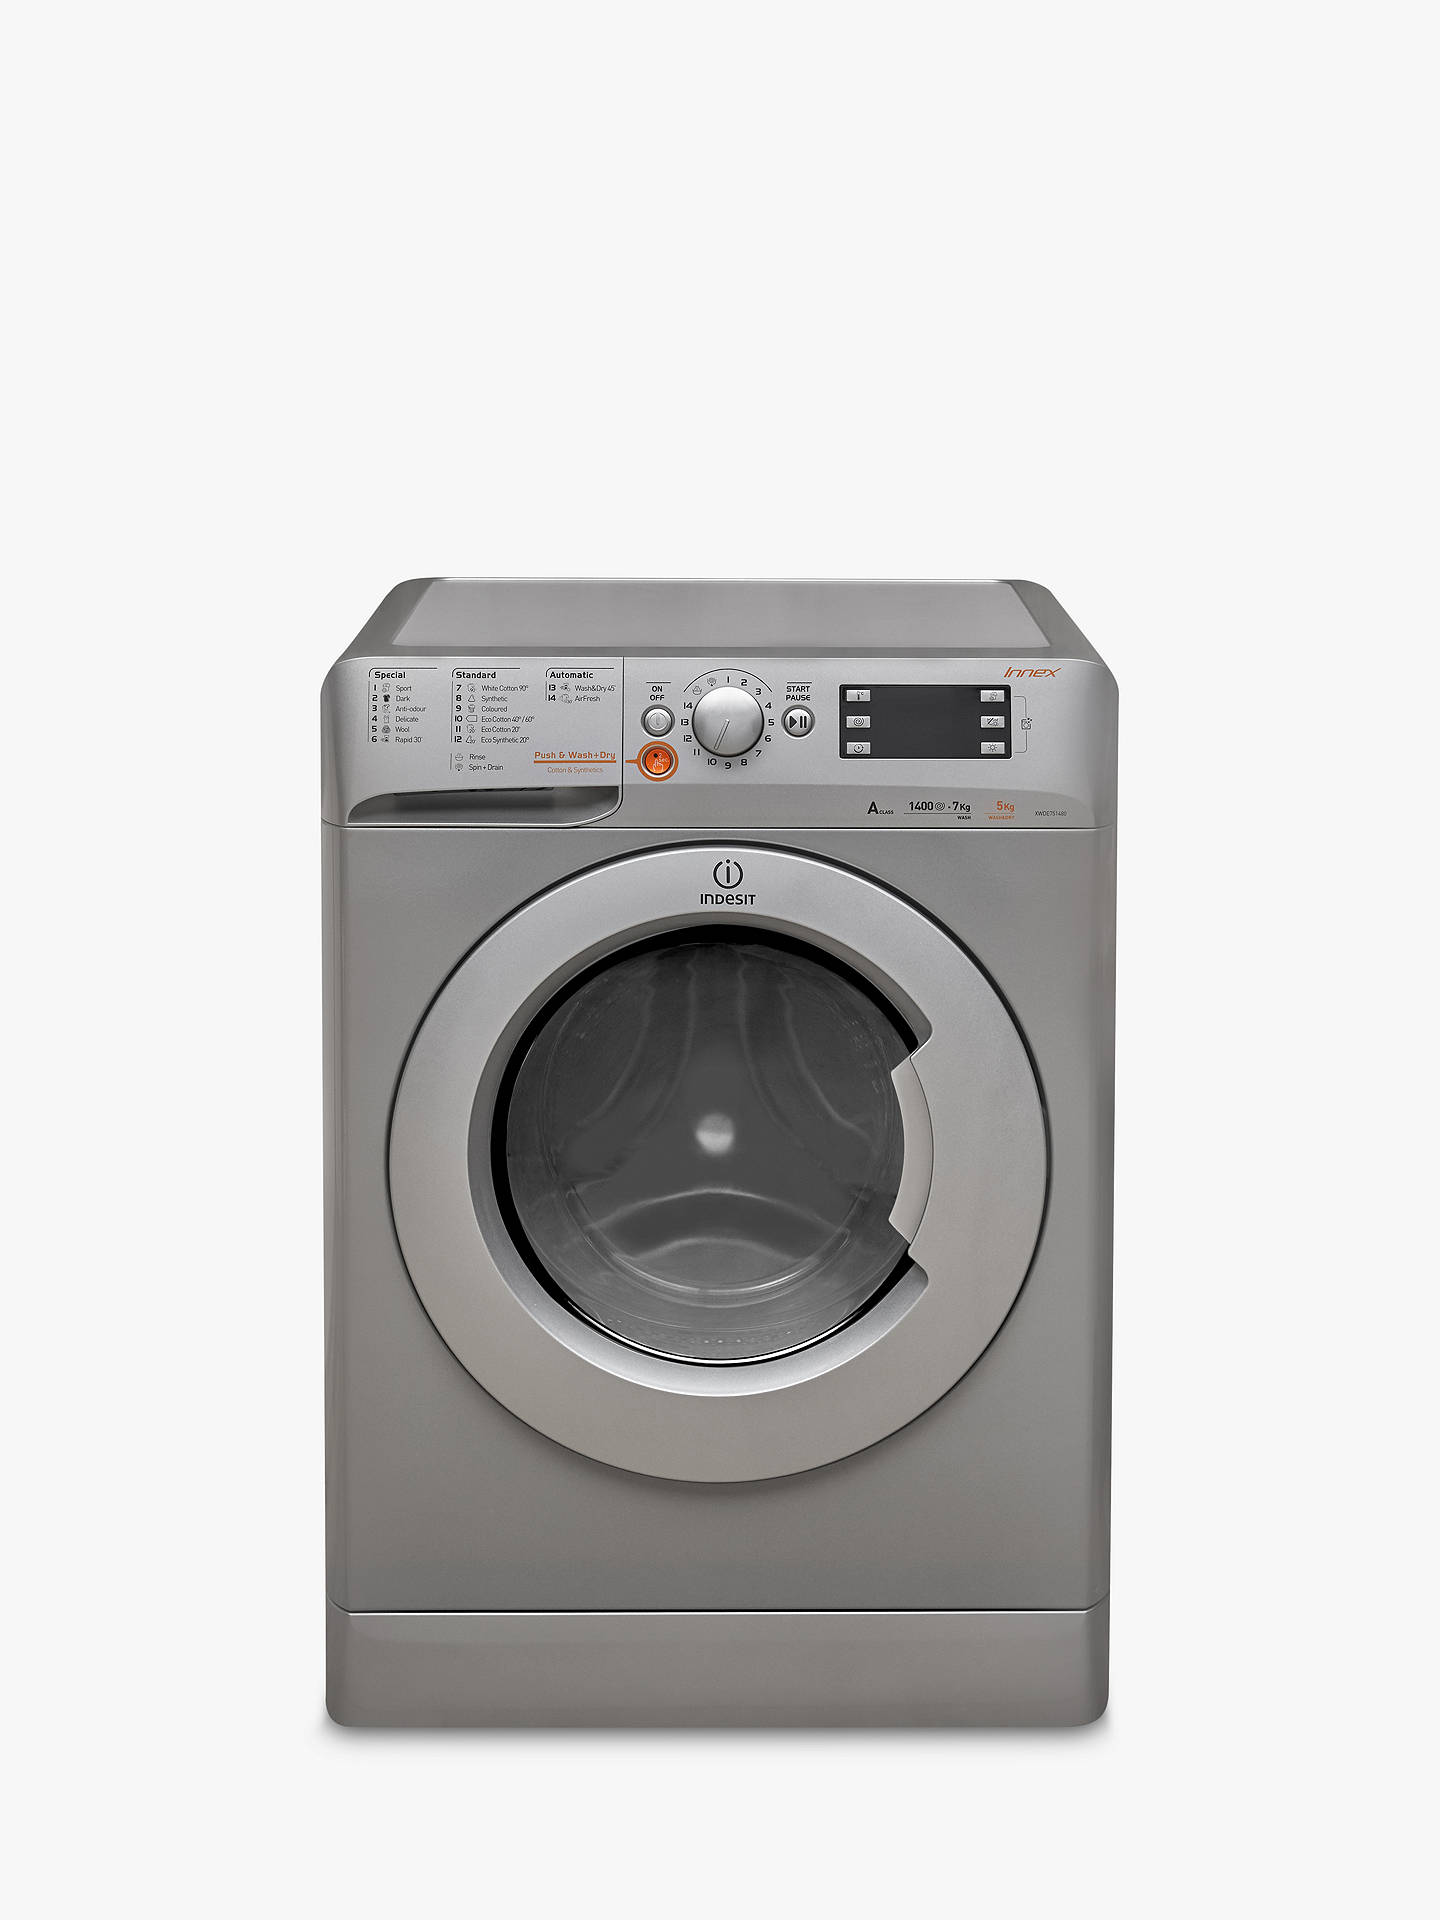 BuyIndesit Innex XWDE751480XS Freestanding Washer Dryer, 7kg Wash/5kg Dry Load, A Energy Rating, 1400rpm Spin, Silver Online at johnlewis.com